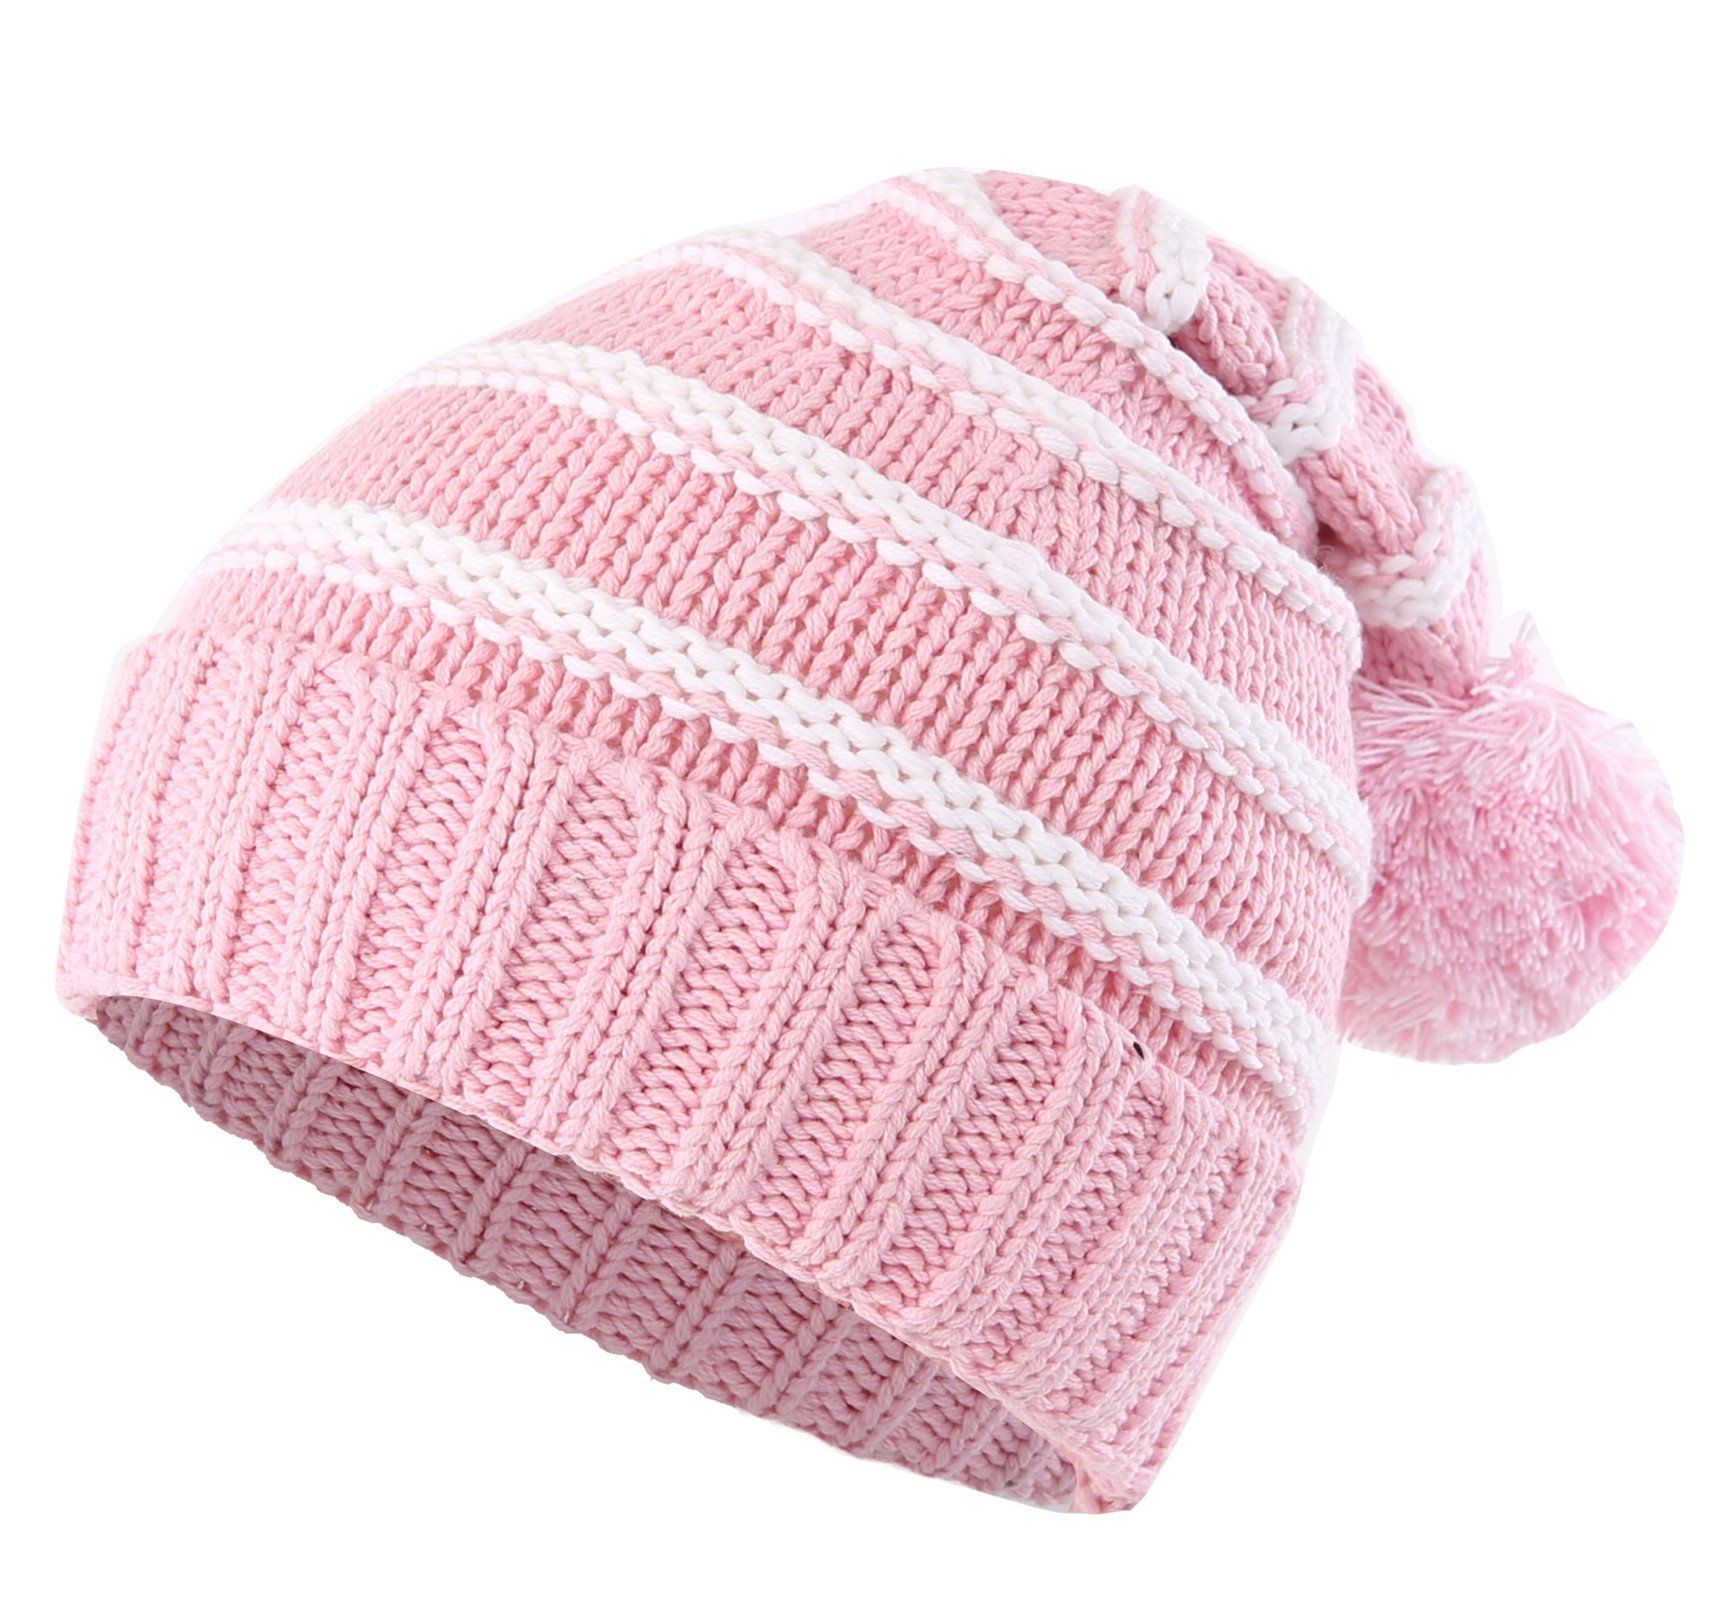 e37453a1d89 Connectyle Toddler Girls Boys Kids Stripe Knit Beanie Cap with Pom Fleece  Lined Winter Hats Pink